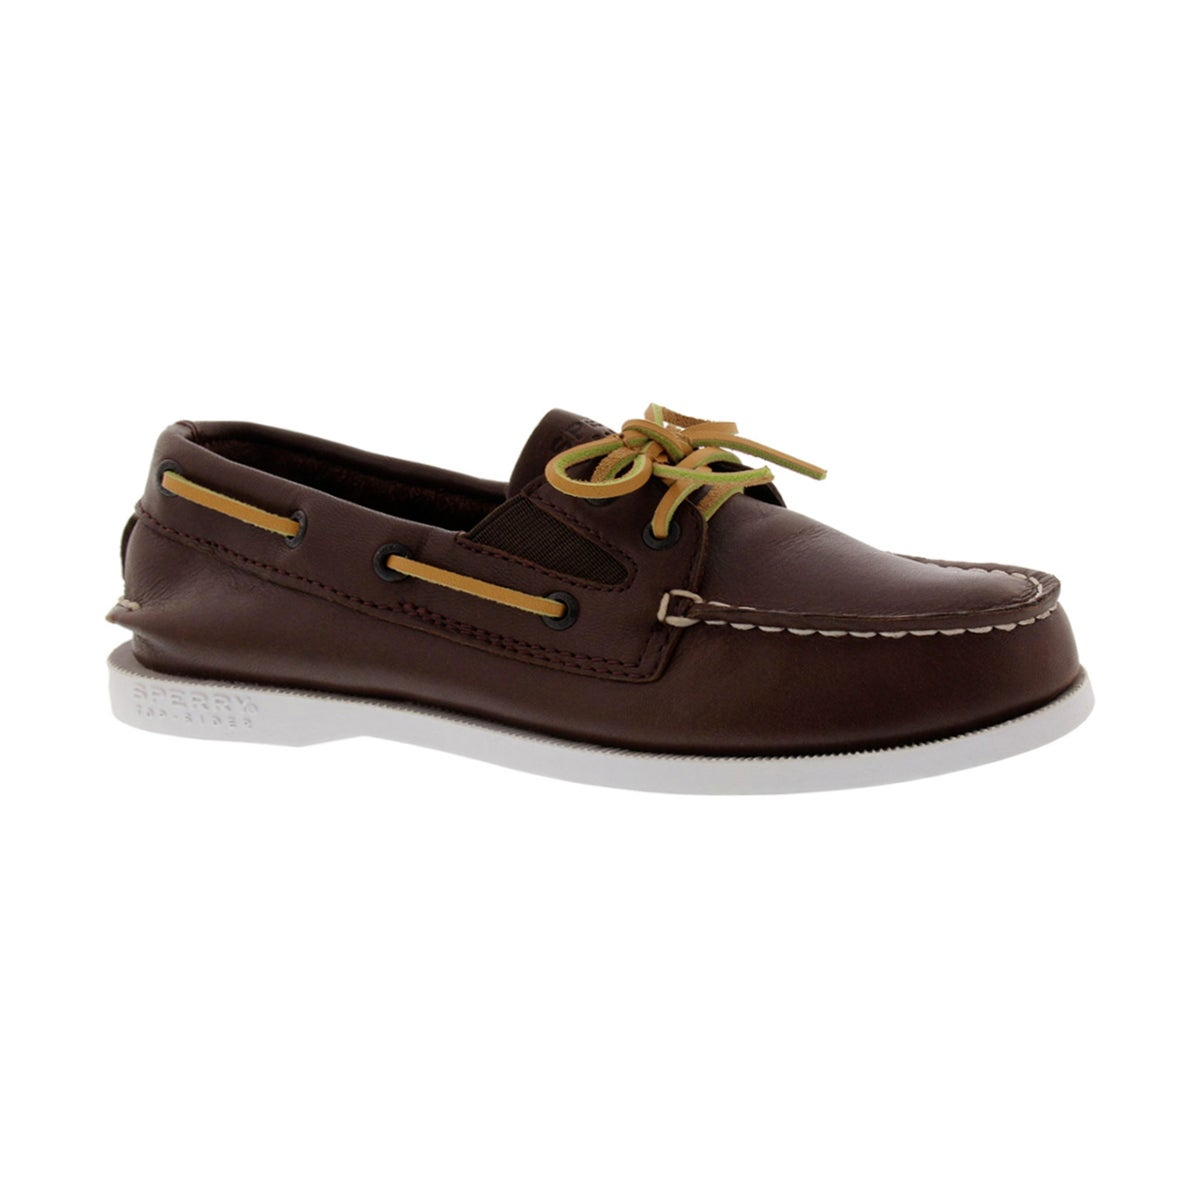 Boys' AUTHENTIC ORIGINAL SLIP ON brown boat shoes